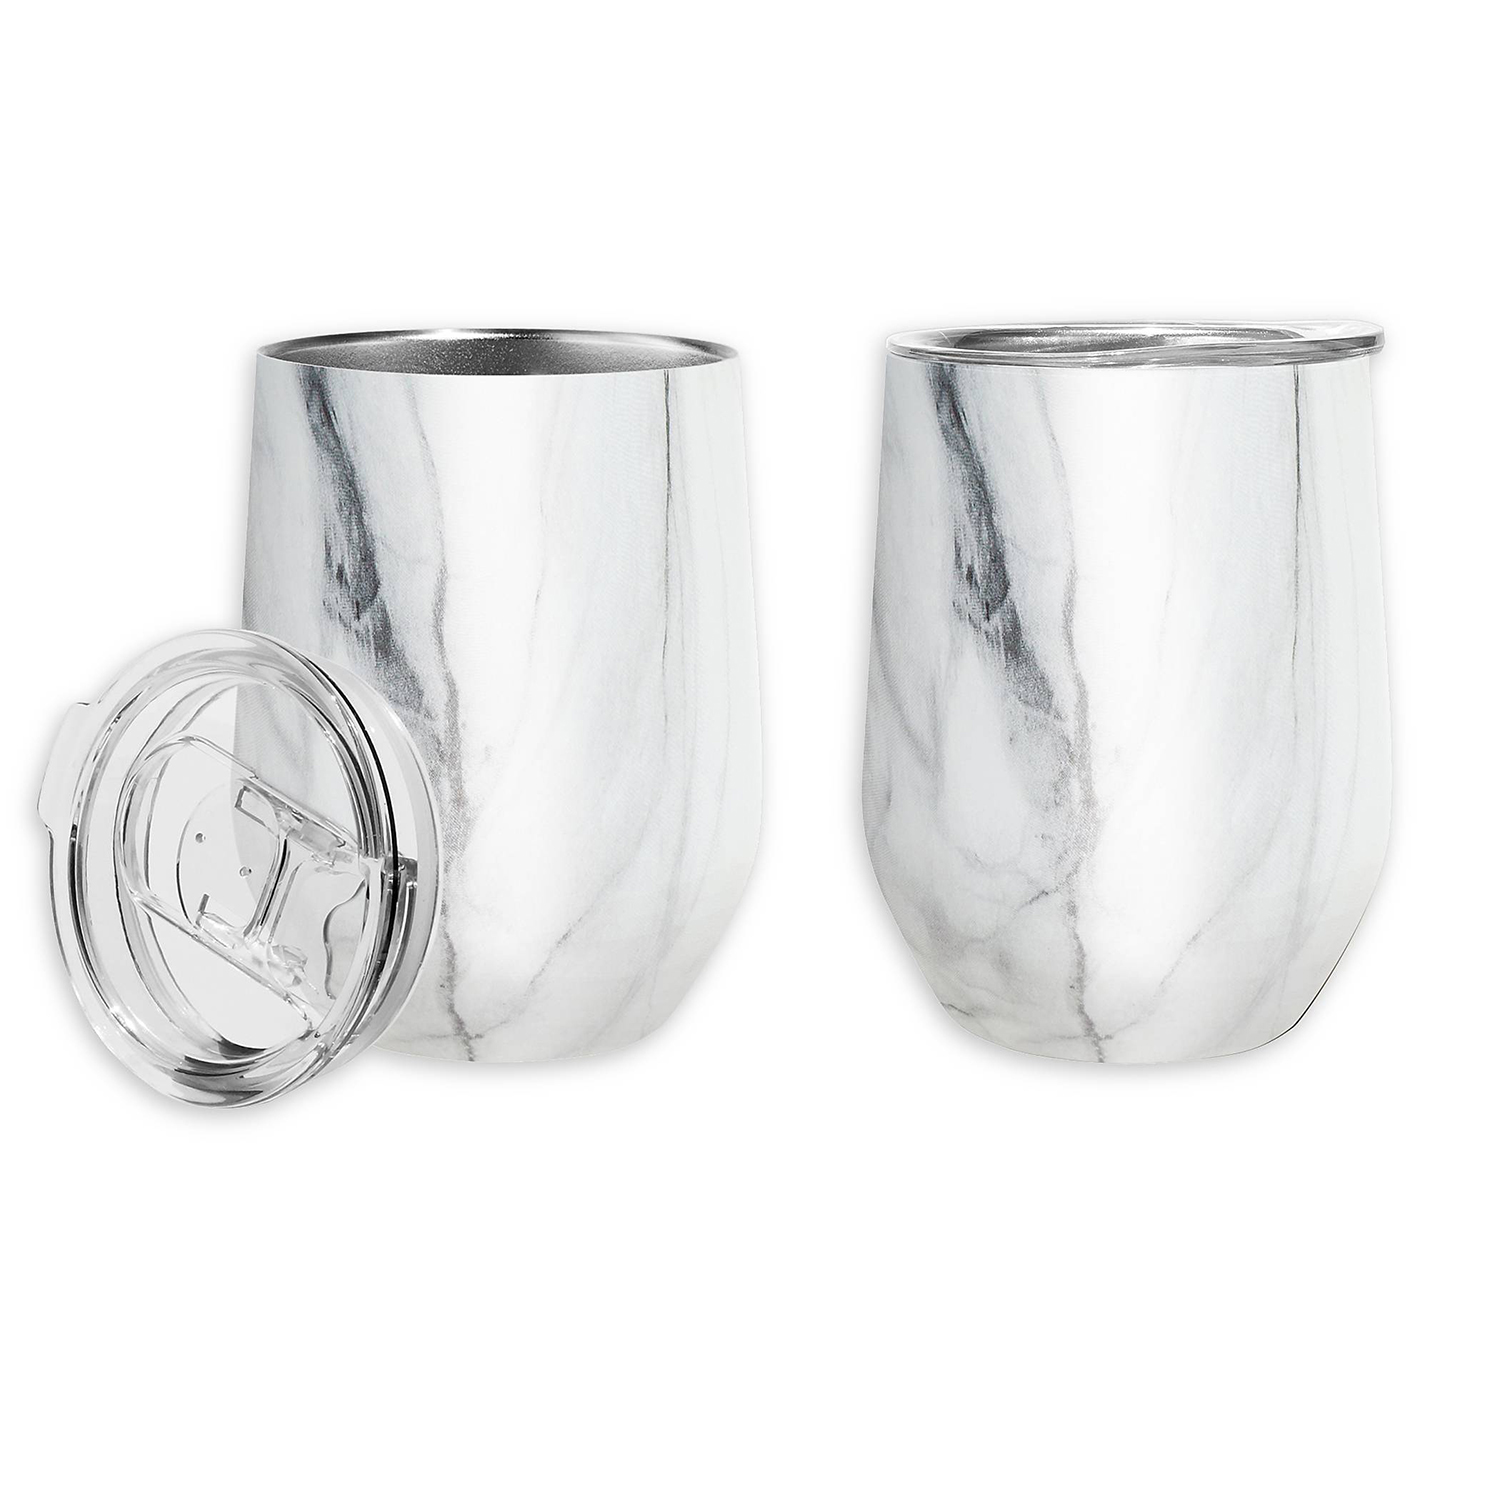 Oggi Cheers Stainless Steel Wine Tumblers (Set of 2)